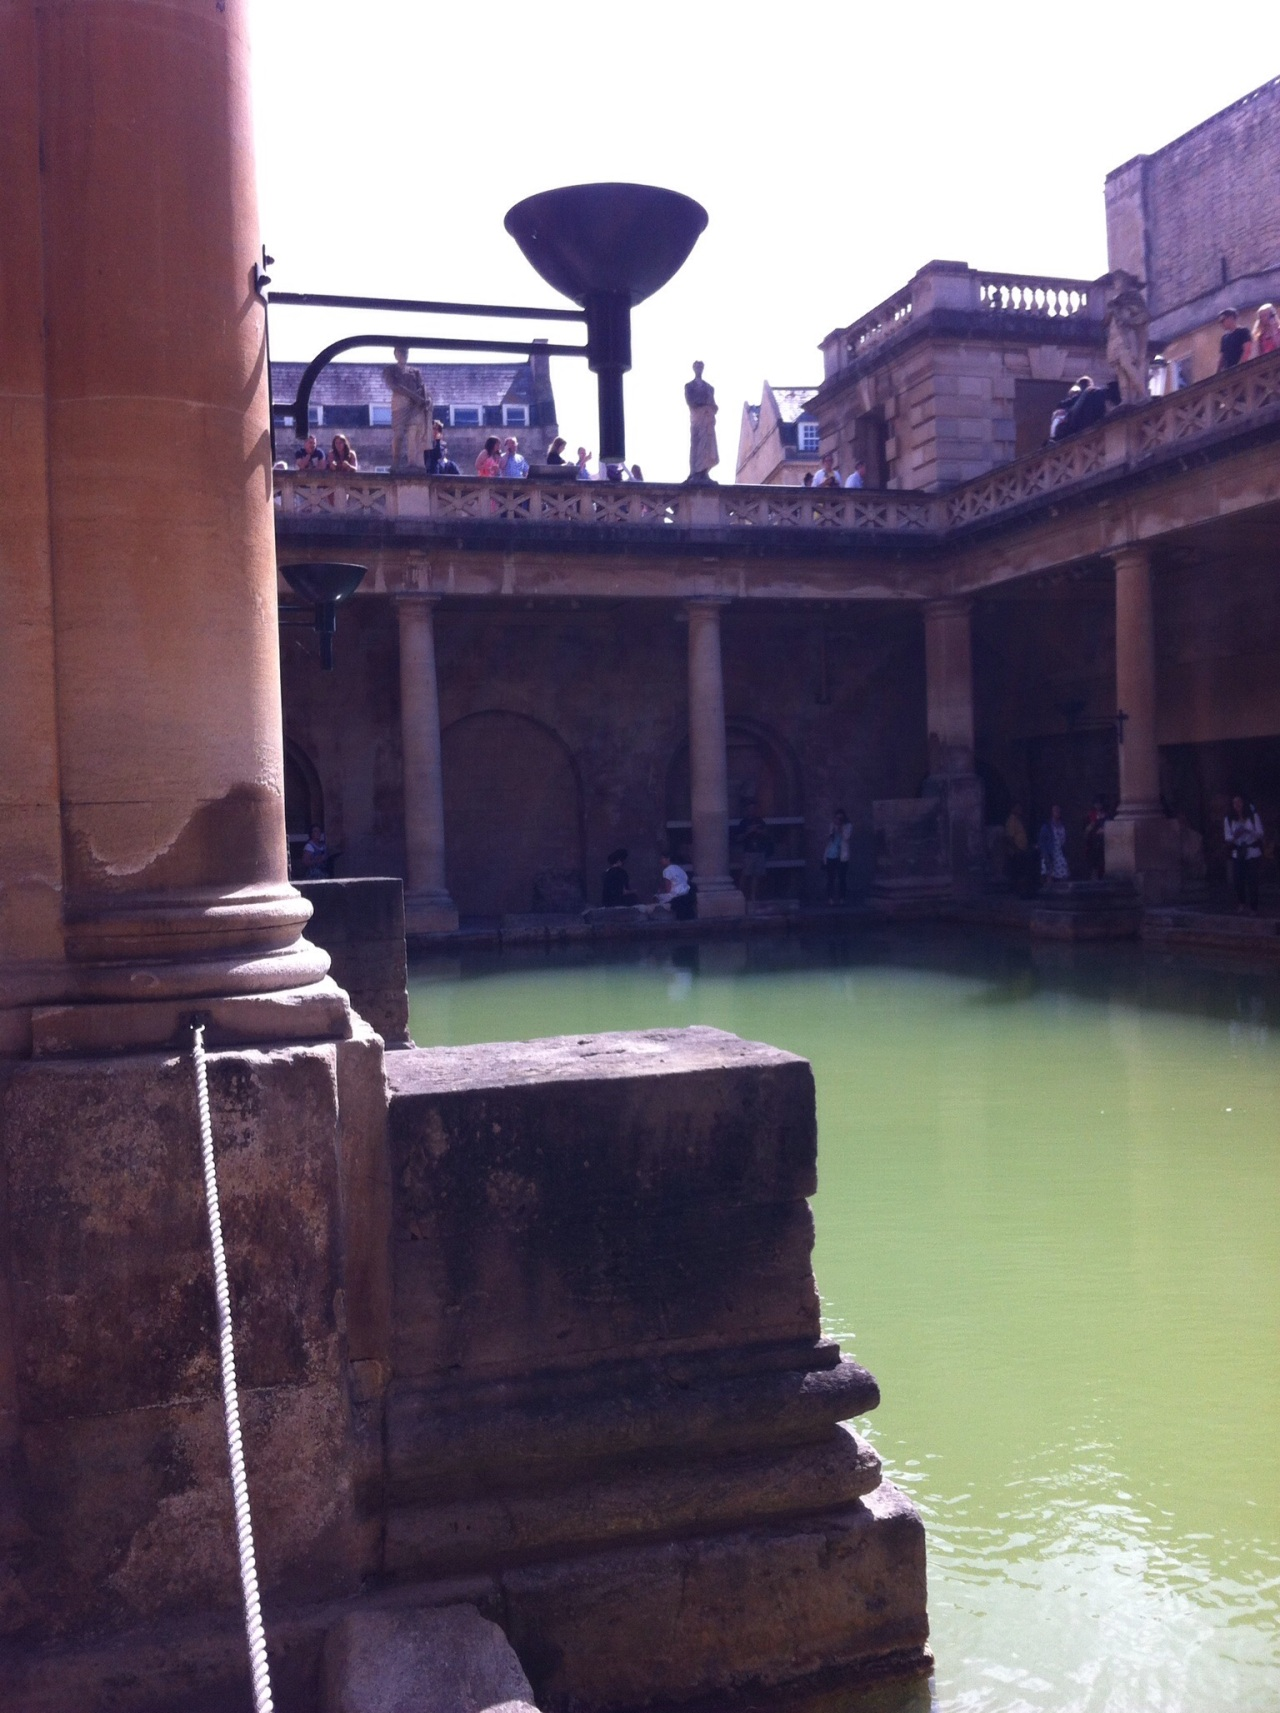 Along the main bath. If you expand the photo, in the center two women employees are dressed up in Roman outfits. [Photo by me, 2015.]